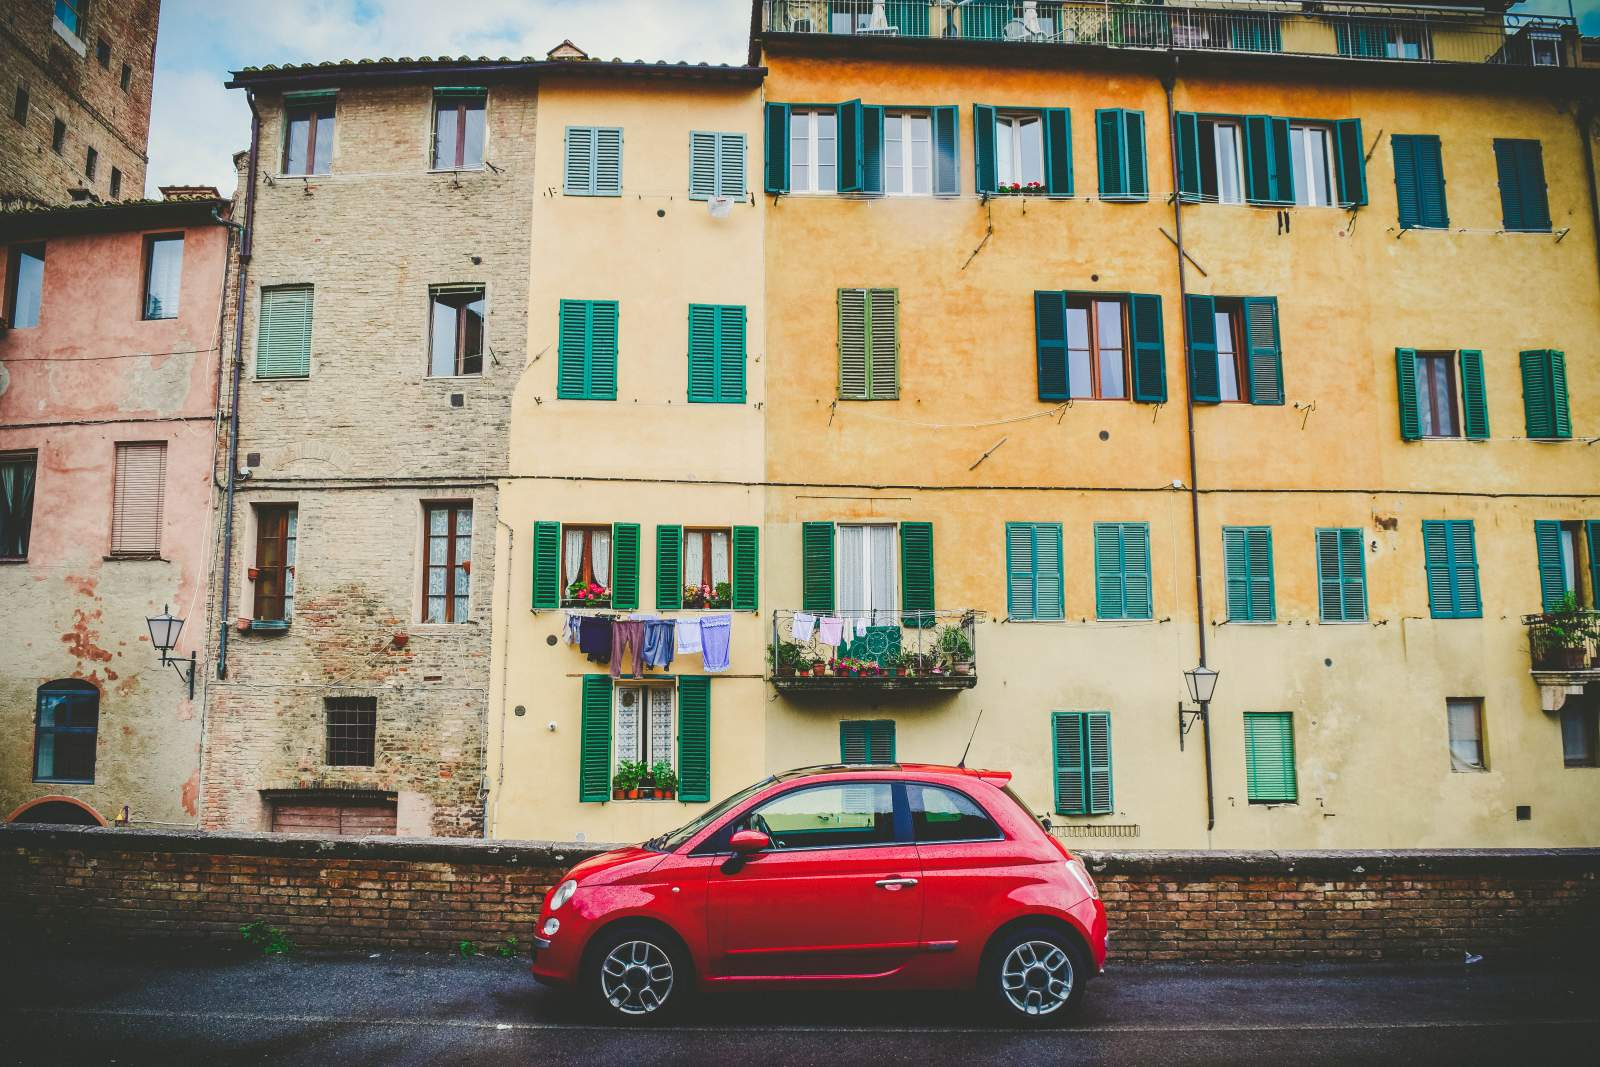 red car in front of buildings